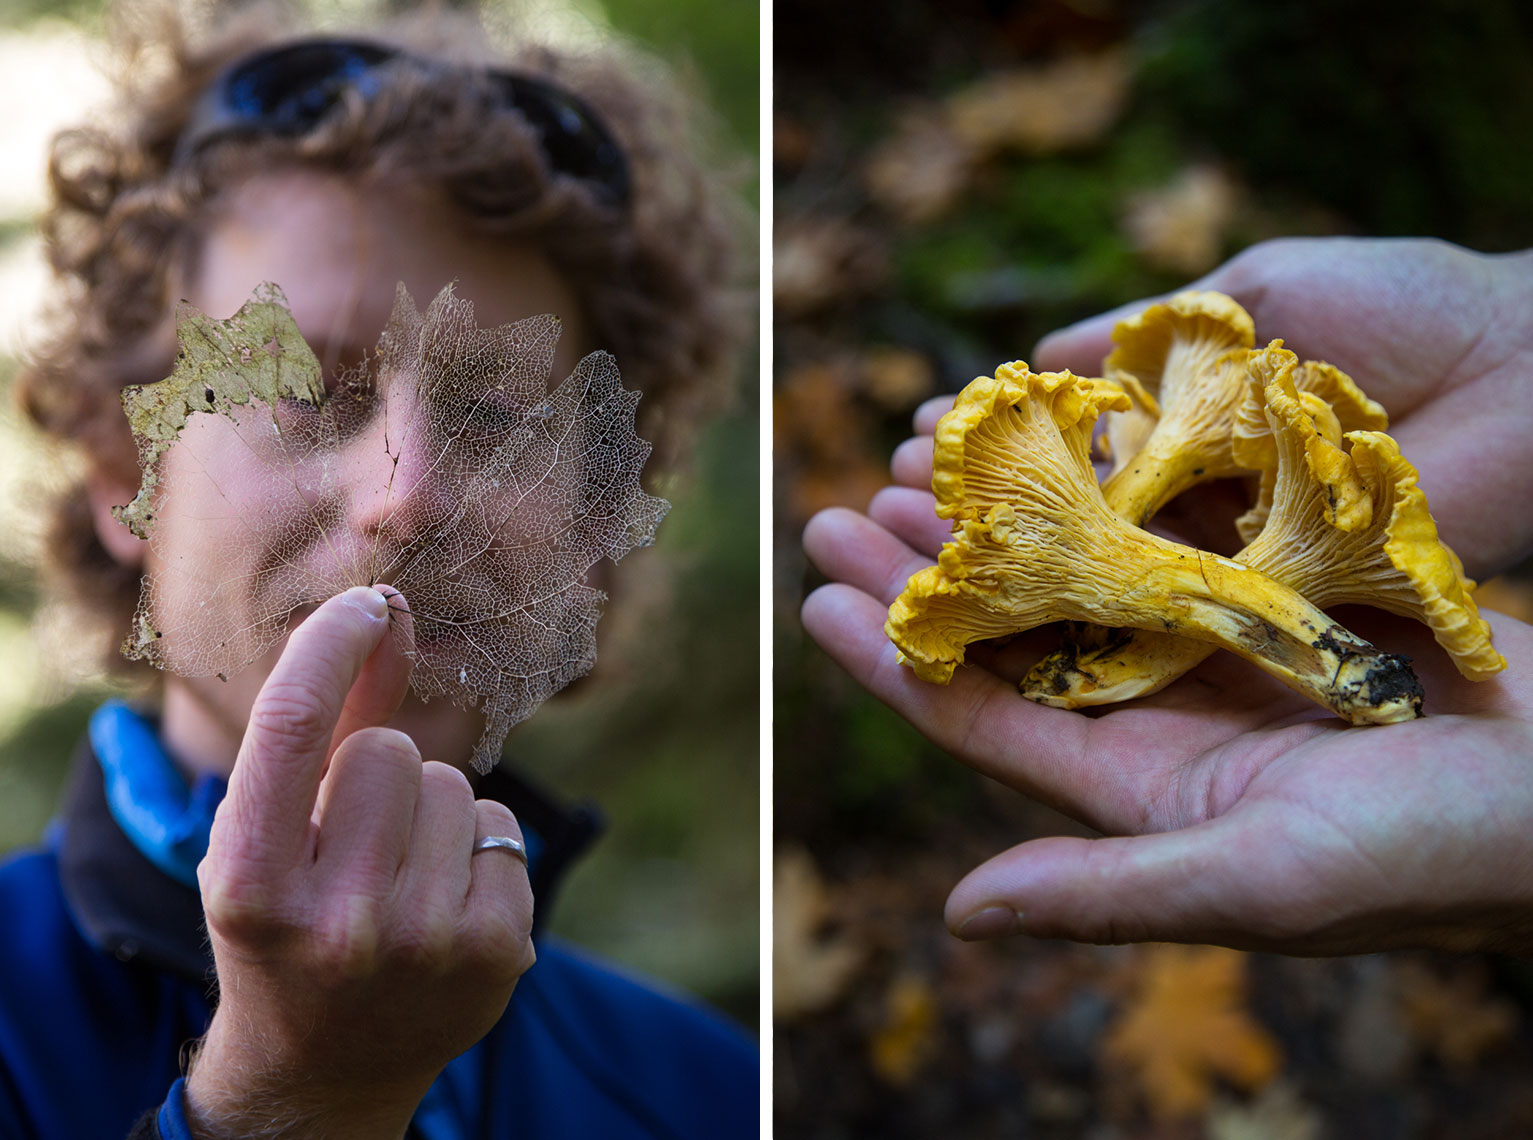 picking chanterelle mushrooms